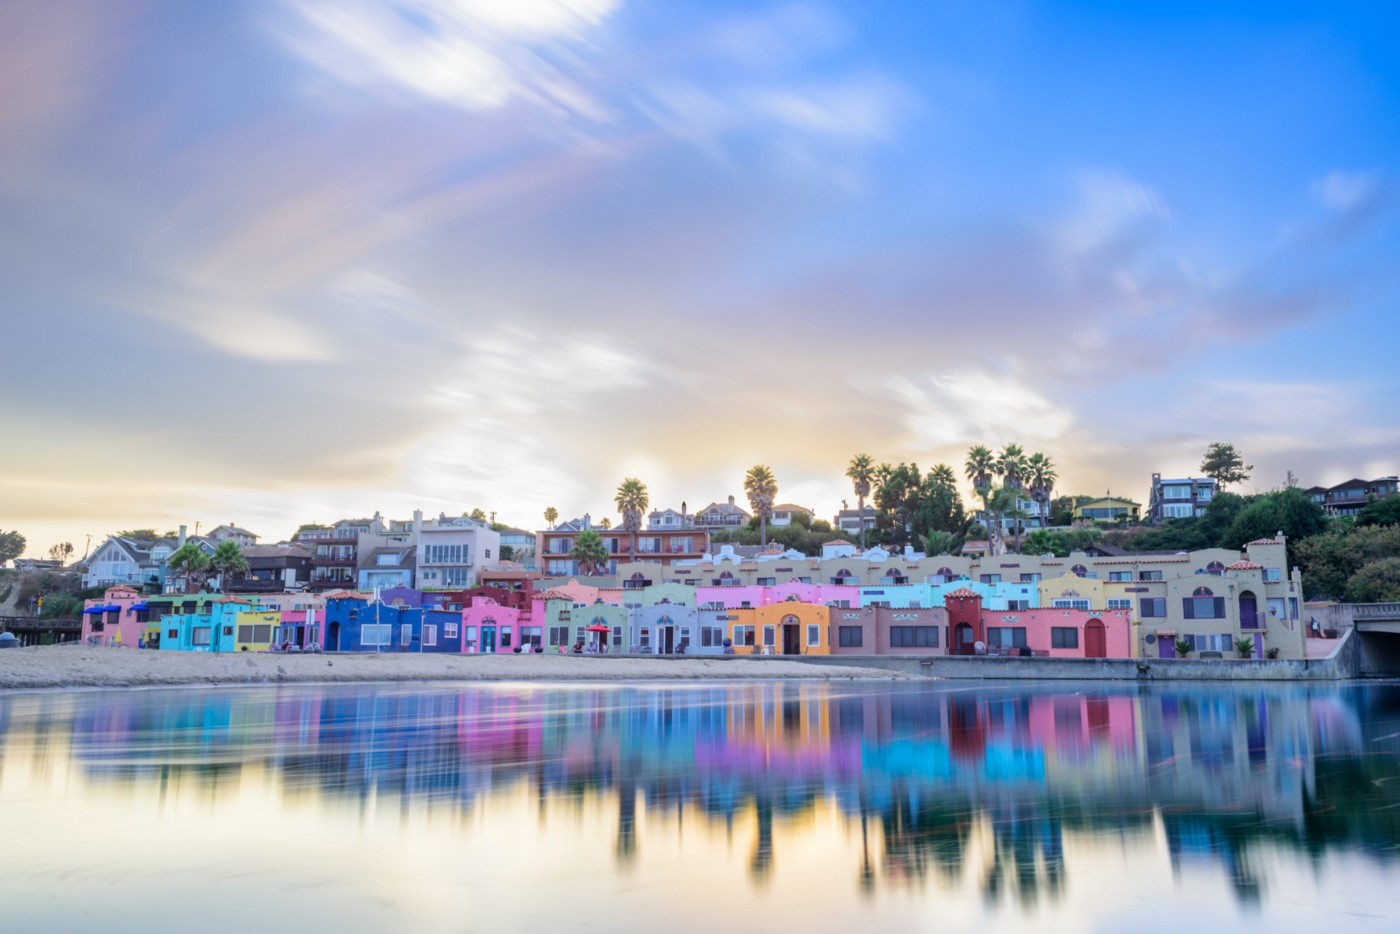 A row of multicolored pastel houses right in front of a body of water before sunset.